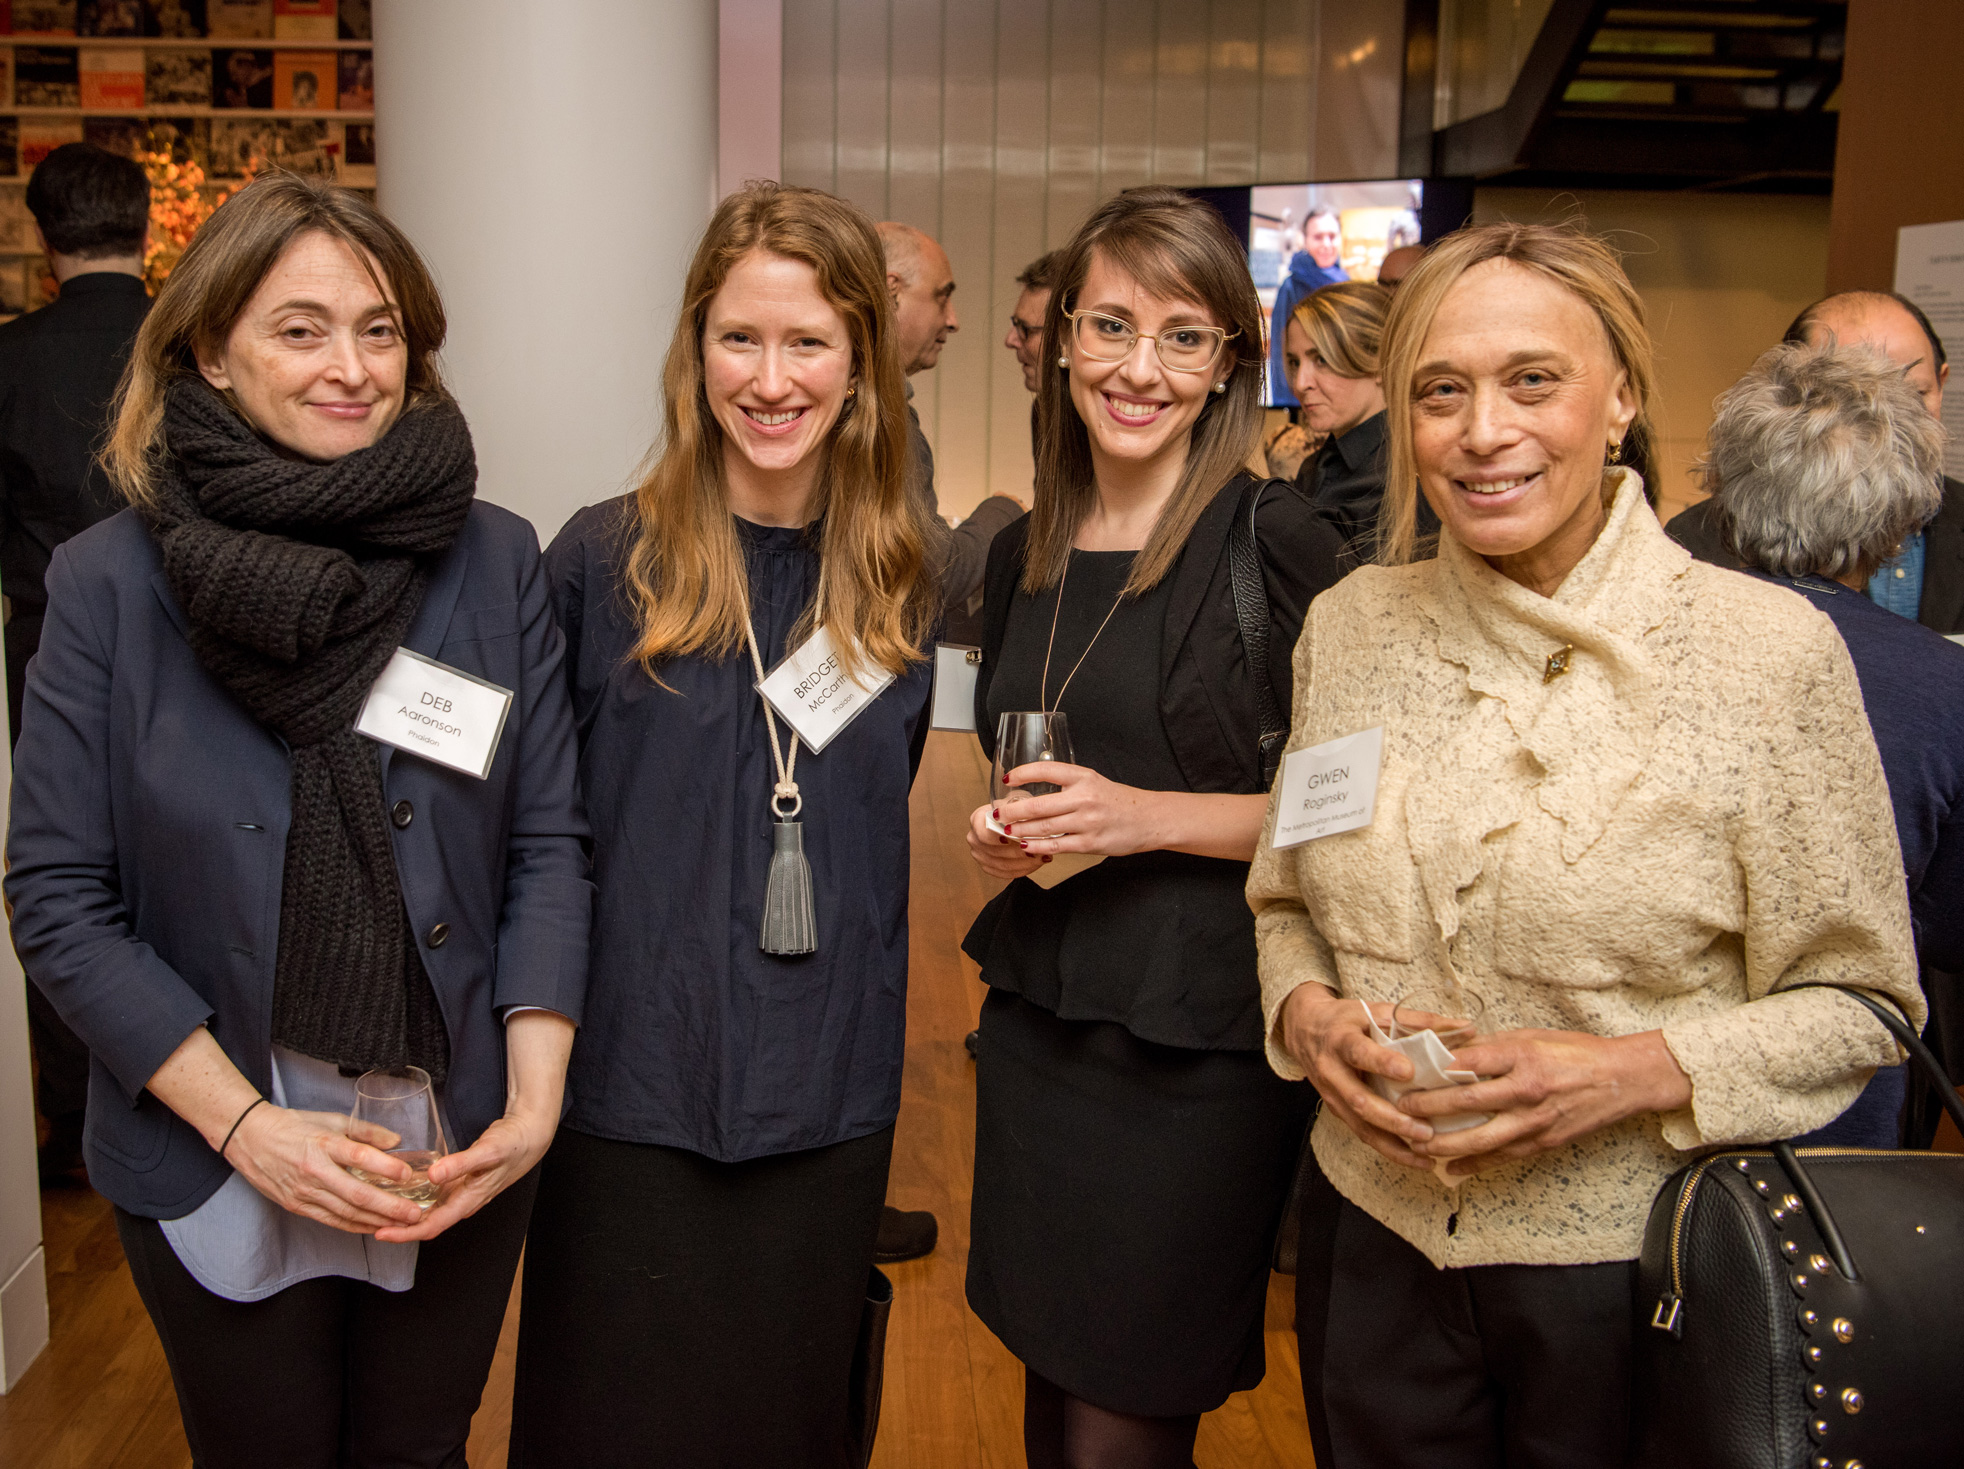 Phaidon's Group Publisher Deb Aaronson and Assistant Editor Bridget McCarthy with The Met Museum's Publishing and Marketing Assistant Rachel High and Associate Publisher Gwen Roginsky